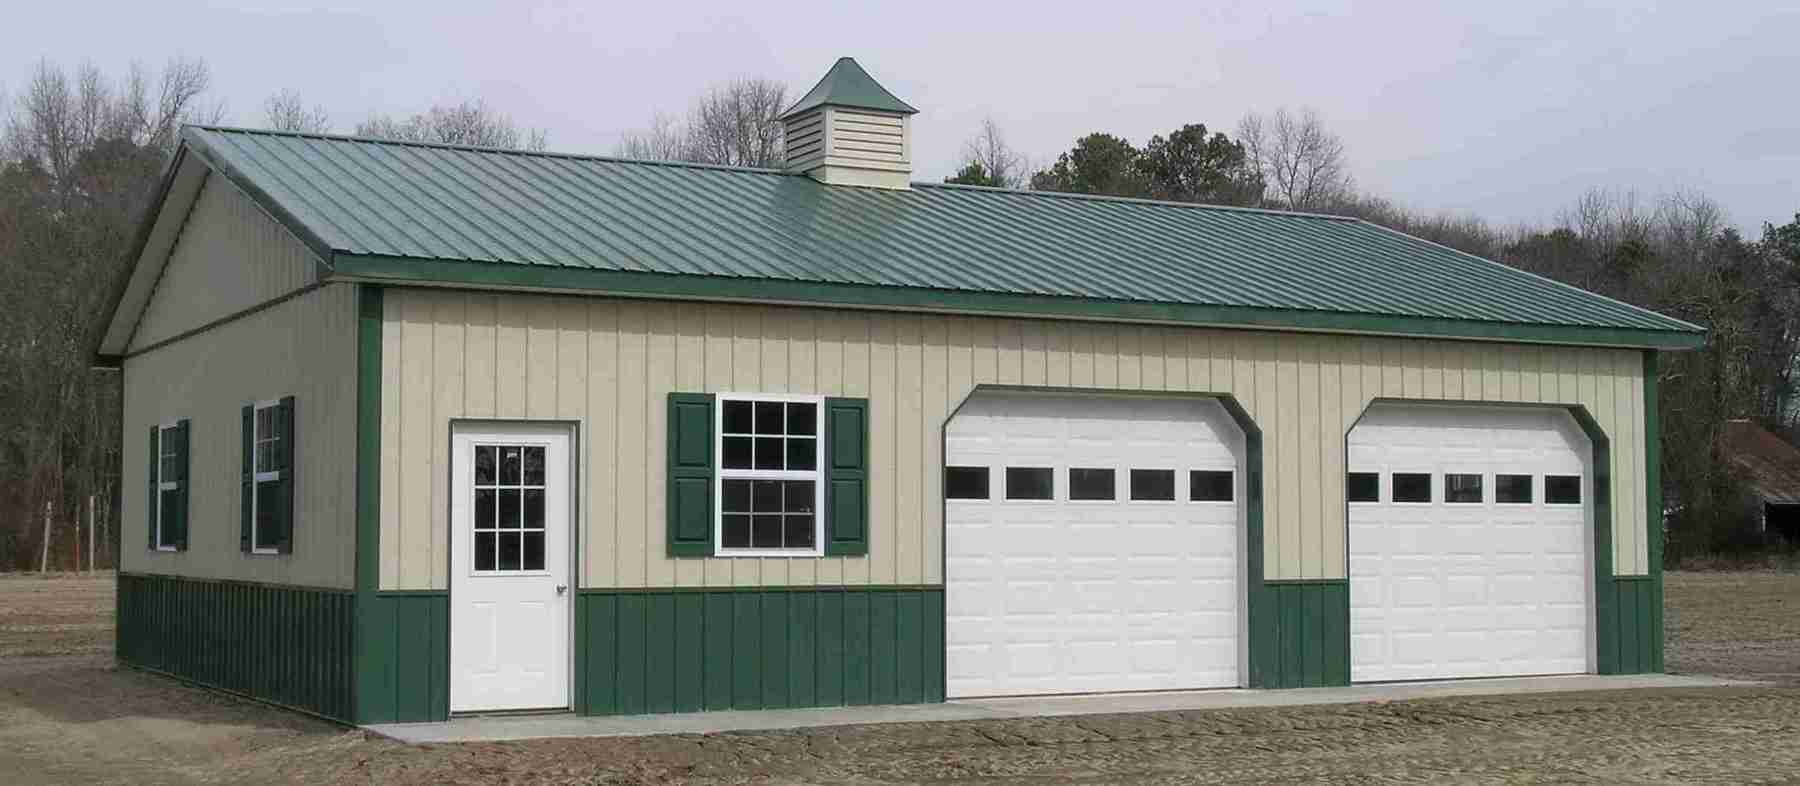 Pole Barn Garage Kits 101. Kitchen Doors. Single French Door. Screen Doors For French Doors. Door Lock Installation Kit. Garage Door Opener Belt Replacement. 8 Foot French Doors. Liftmaster Wifi Garage. Garage Vacuum Cleaners